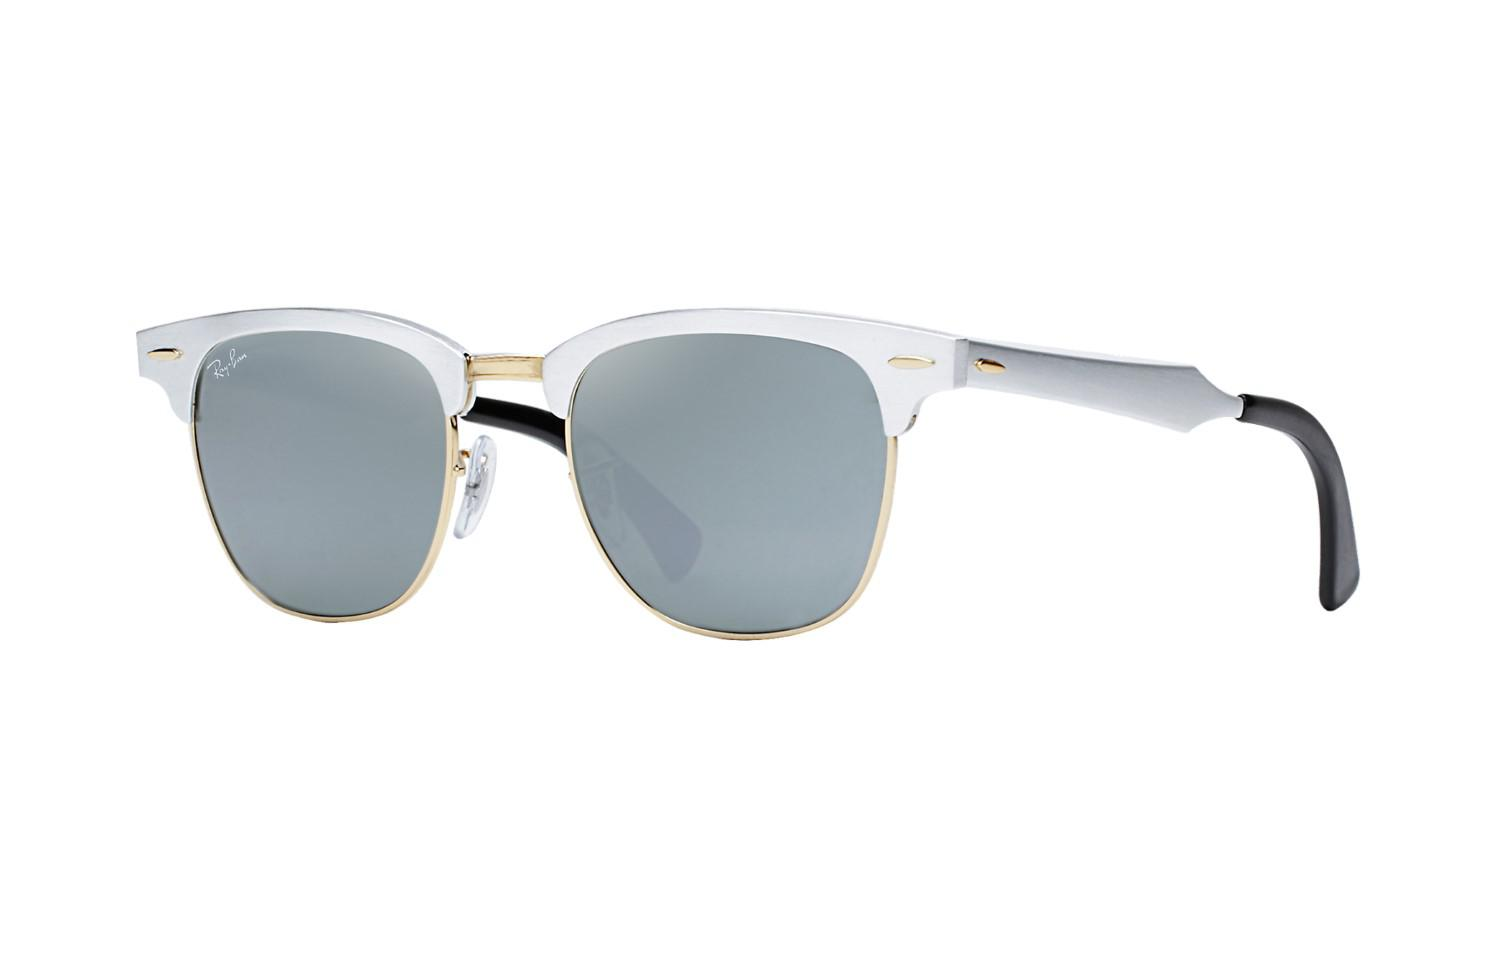 49ce268827 Ray-Ban 0rb3507 137 40 51 Brushed Silver arista grey Mirror ...